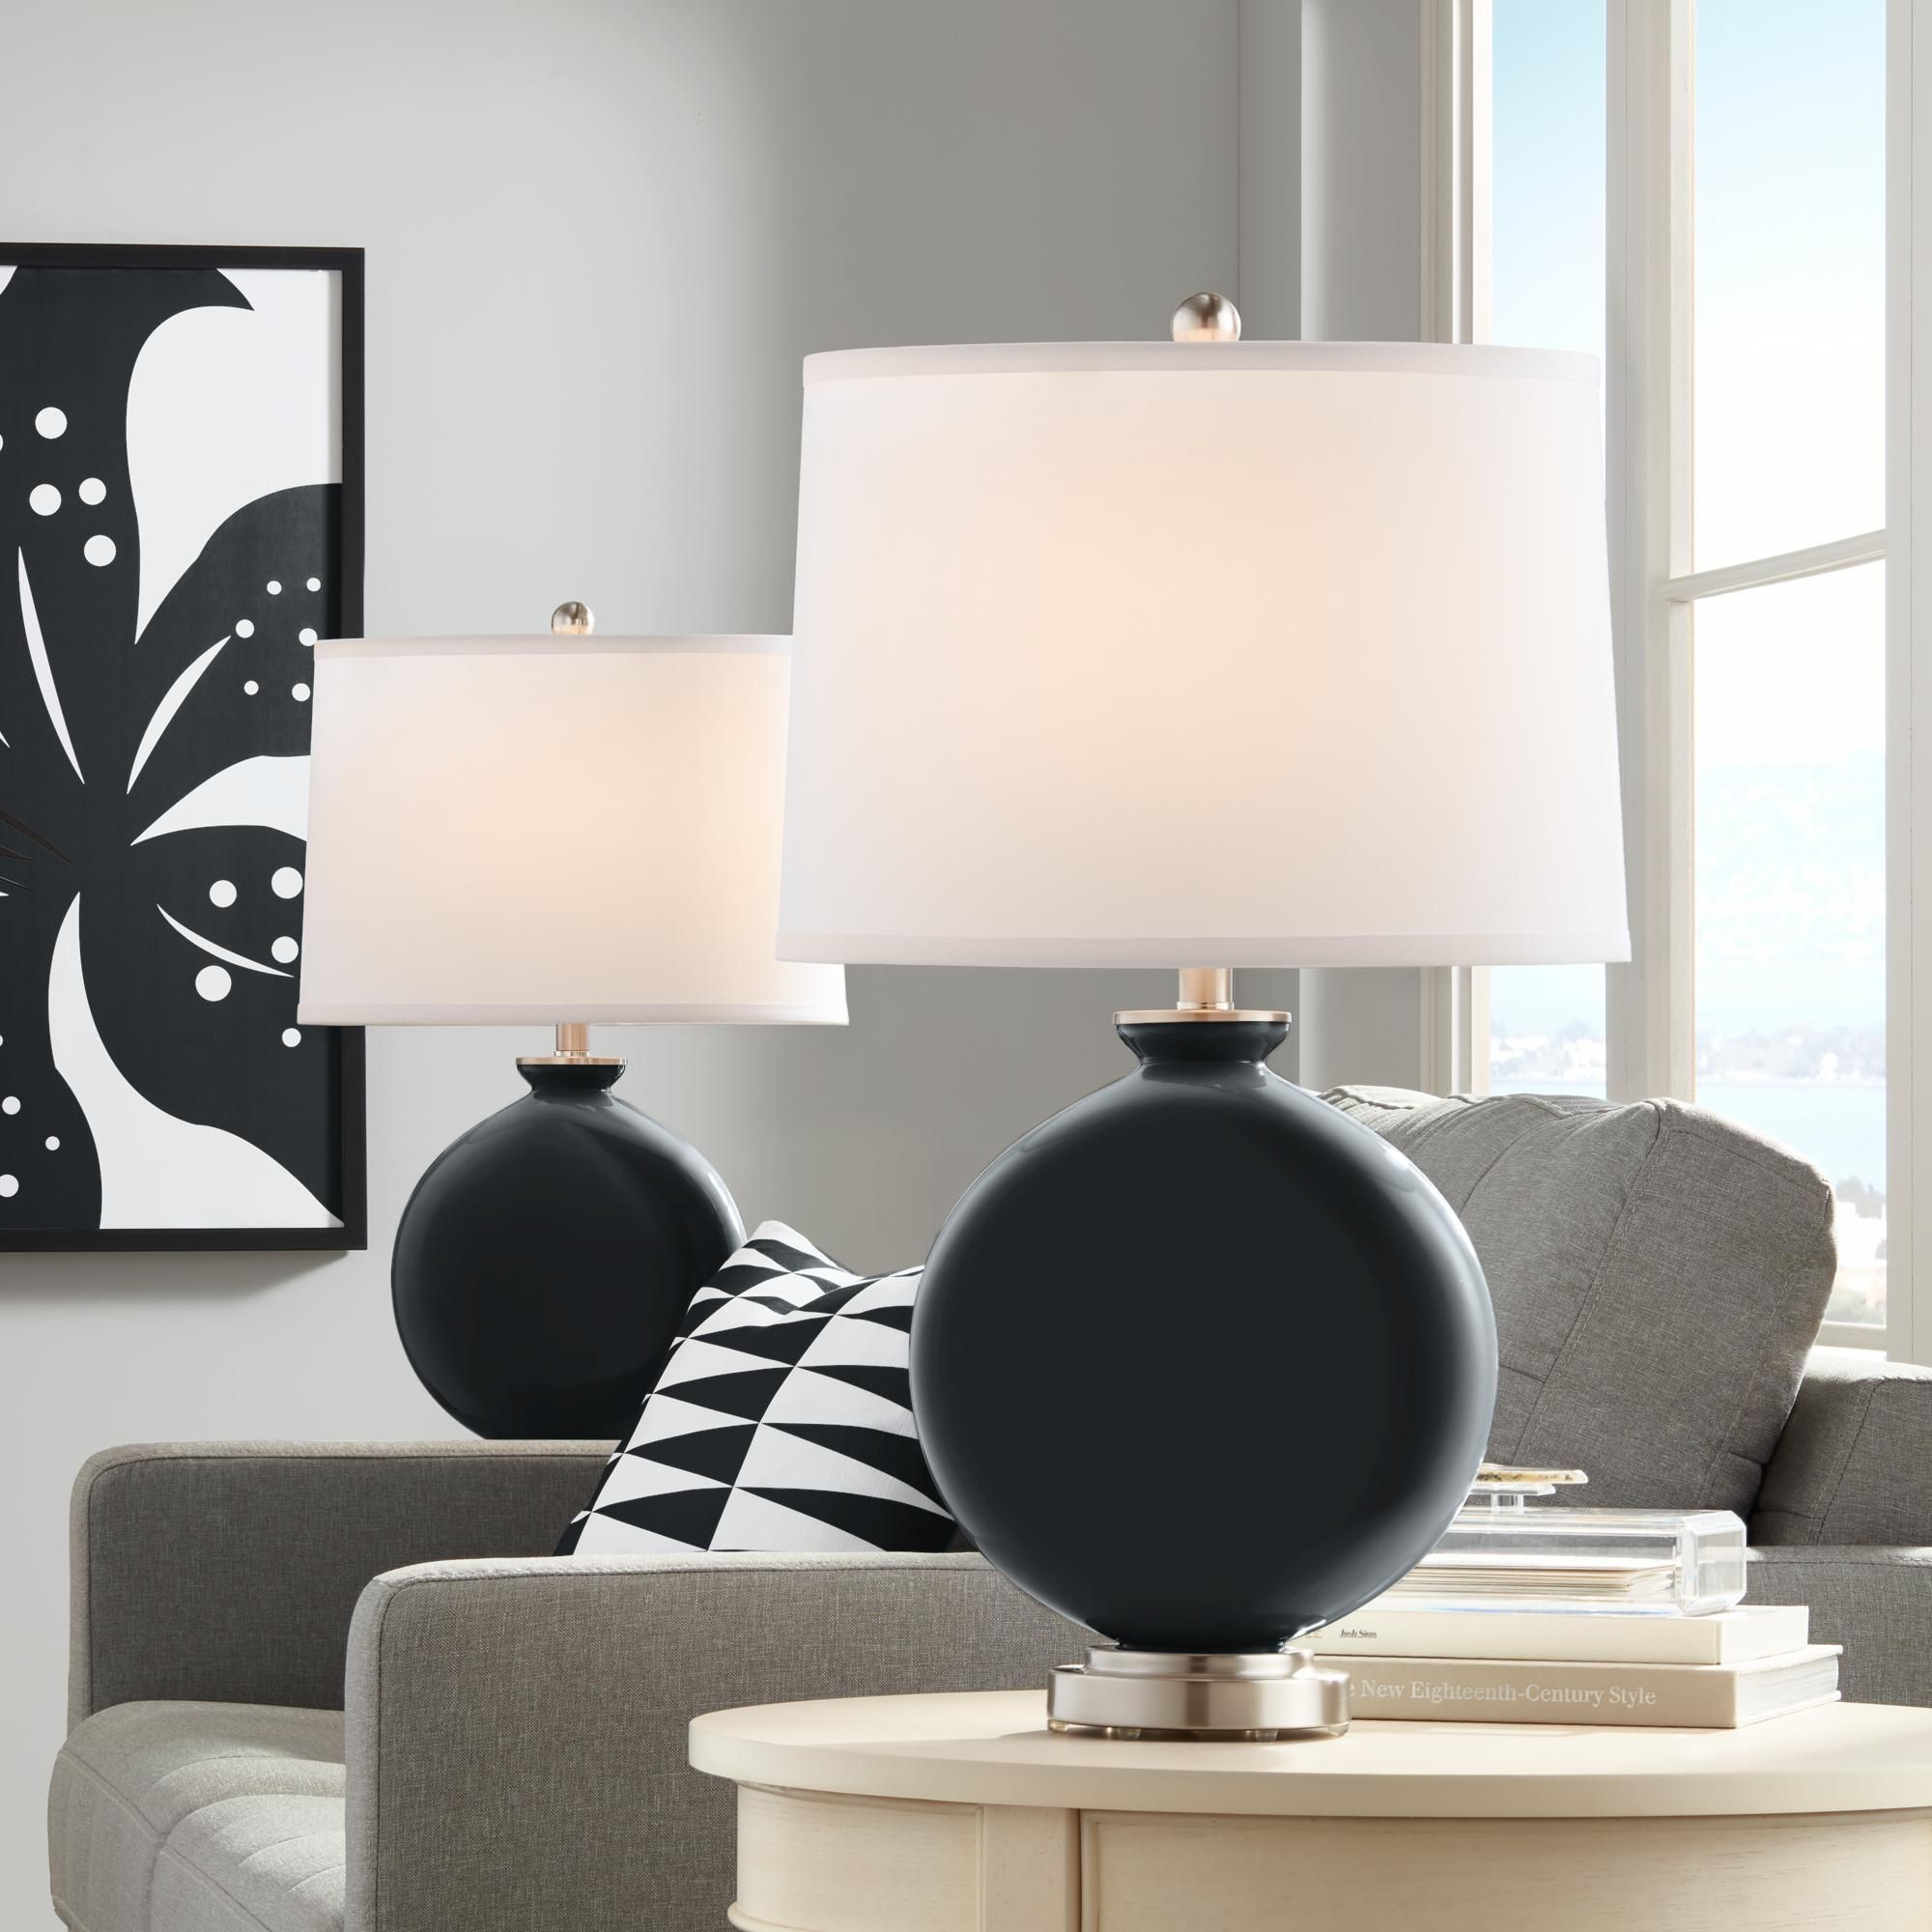 Black Of Night Carrie Table Lamp Set Of 2 Di 2020 #table #lamp #sets #living #room